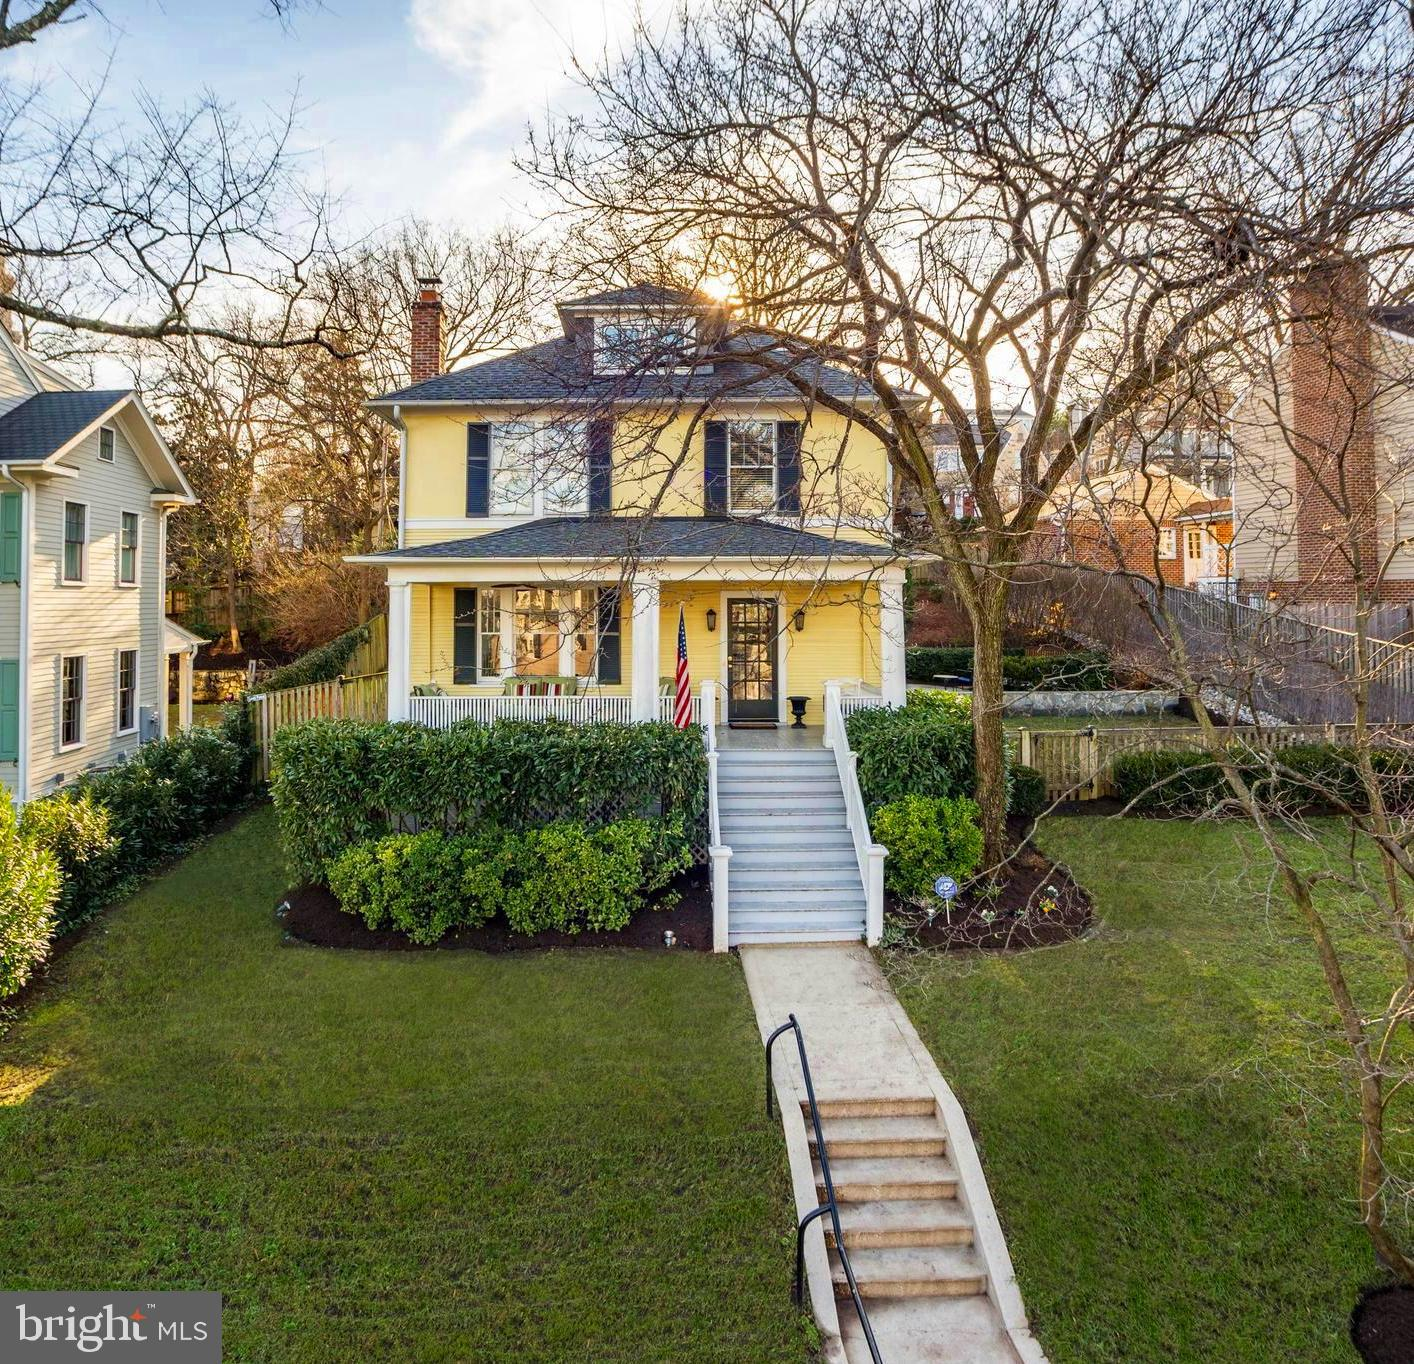 Owners have renovated this charming home top to bottom this stately 1900's home.  Just 4 blocks to King St  metro.  High Ceilings. Sports court plus a large stone patio and  lush lawn.  Entertain a 100+ with this terrace and space.  Renovated eat in kitchen and brand new white marble baths. Recently replaced roof, HVAC, HWH .  Hardwood floors just refinished and freshly painted.     Spectacular views of Masonic Temple.  A porch you can see for miles.  Finished 4th level w/ TV hang out room with built in desk and lounge area.  Immaculate yard with large grassy play area, brick terrace and fun on the sports court